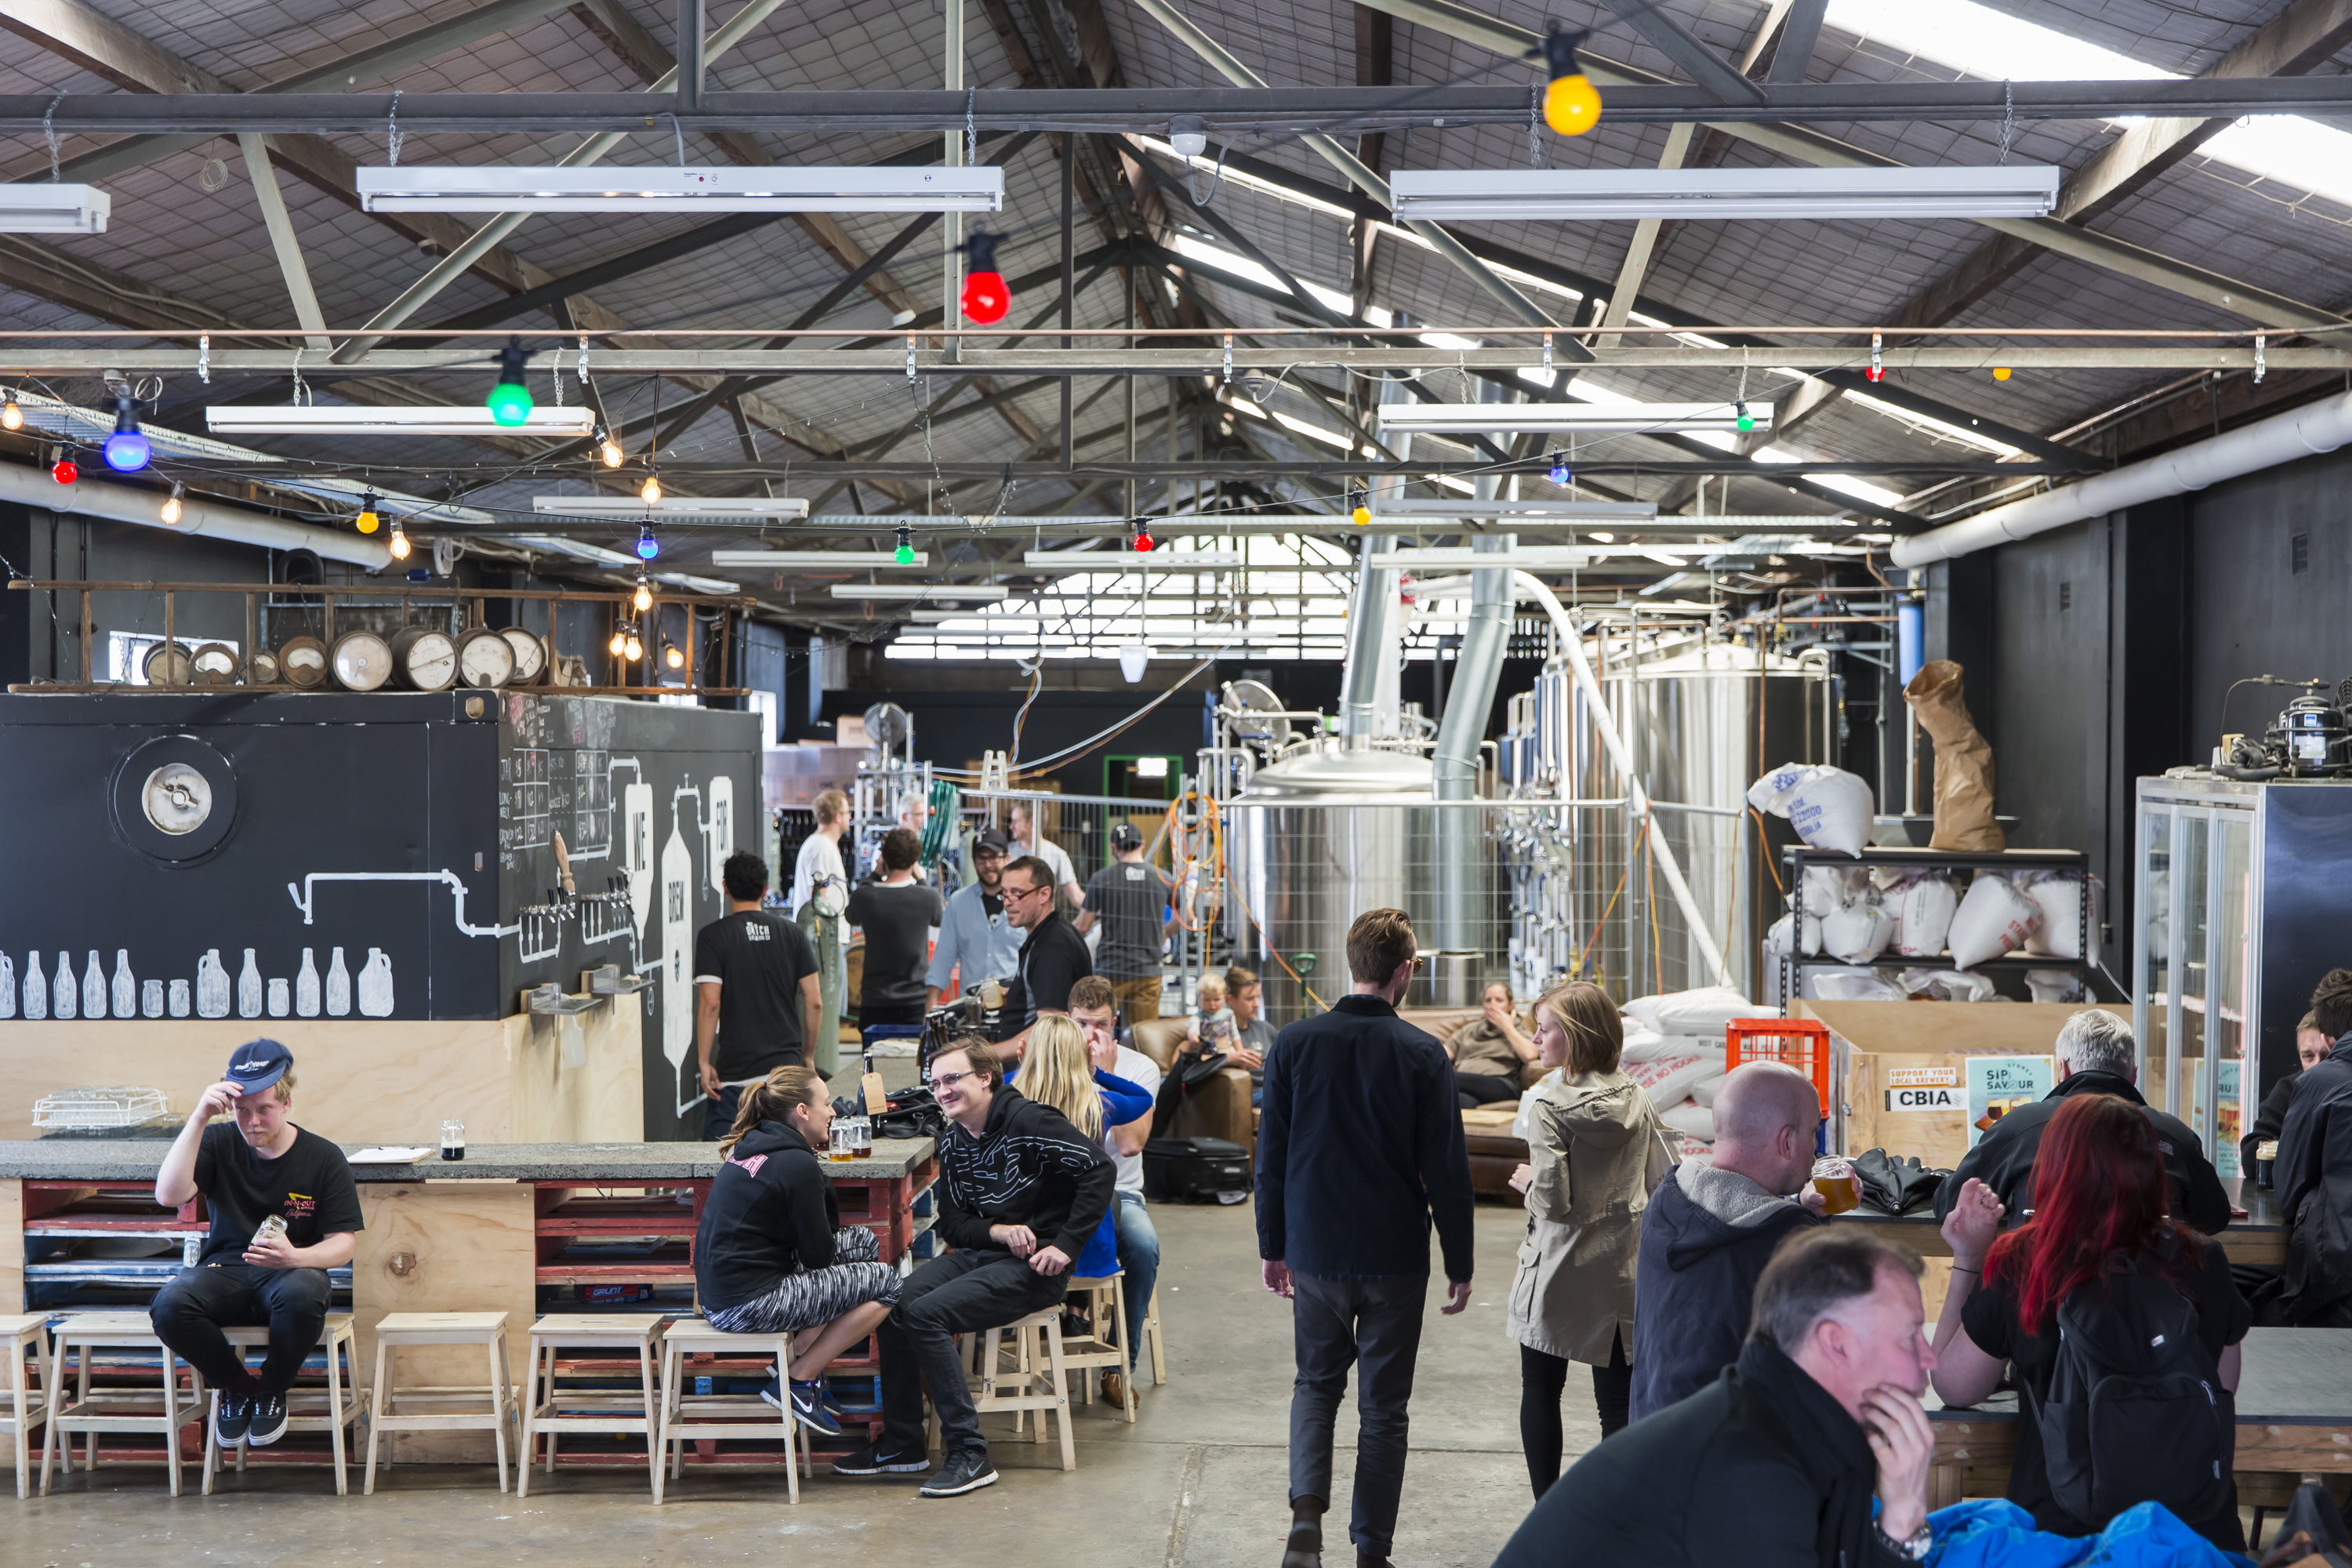 People drinking and socialising at Batch Brewing in Marrickville